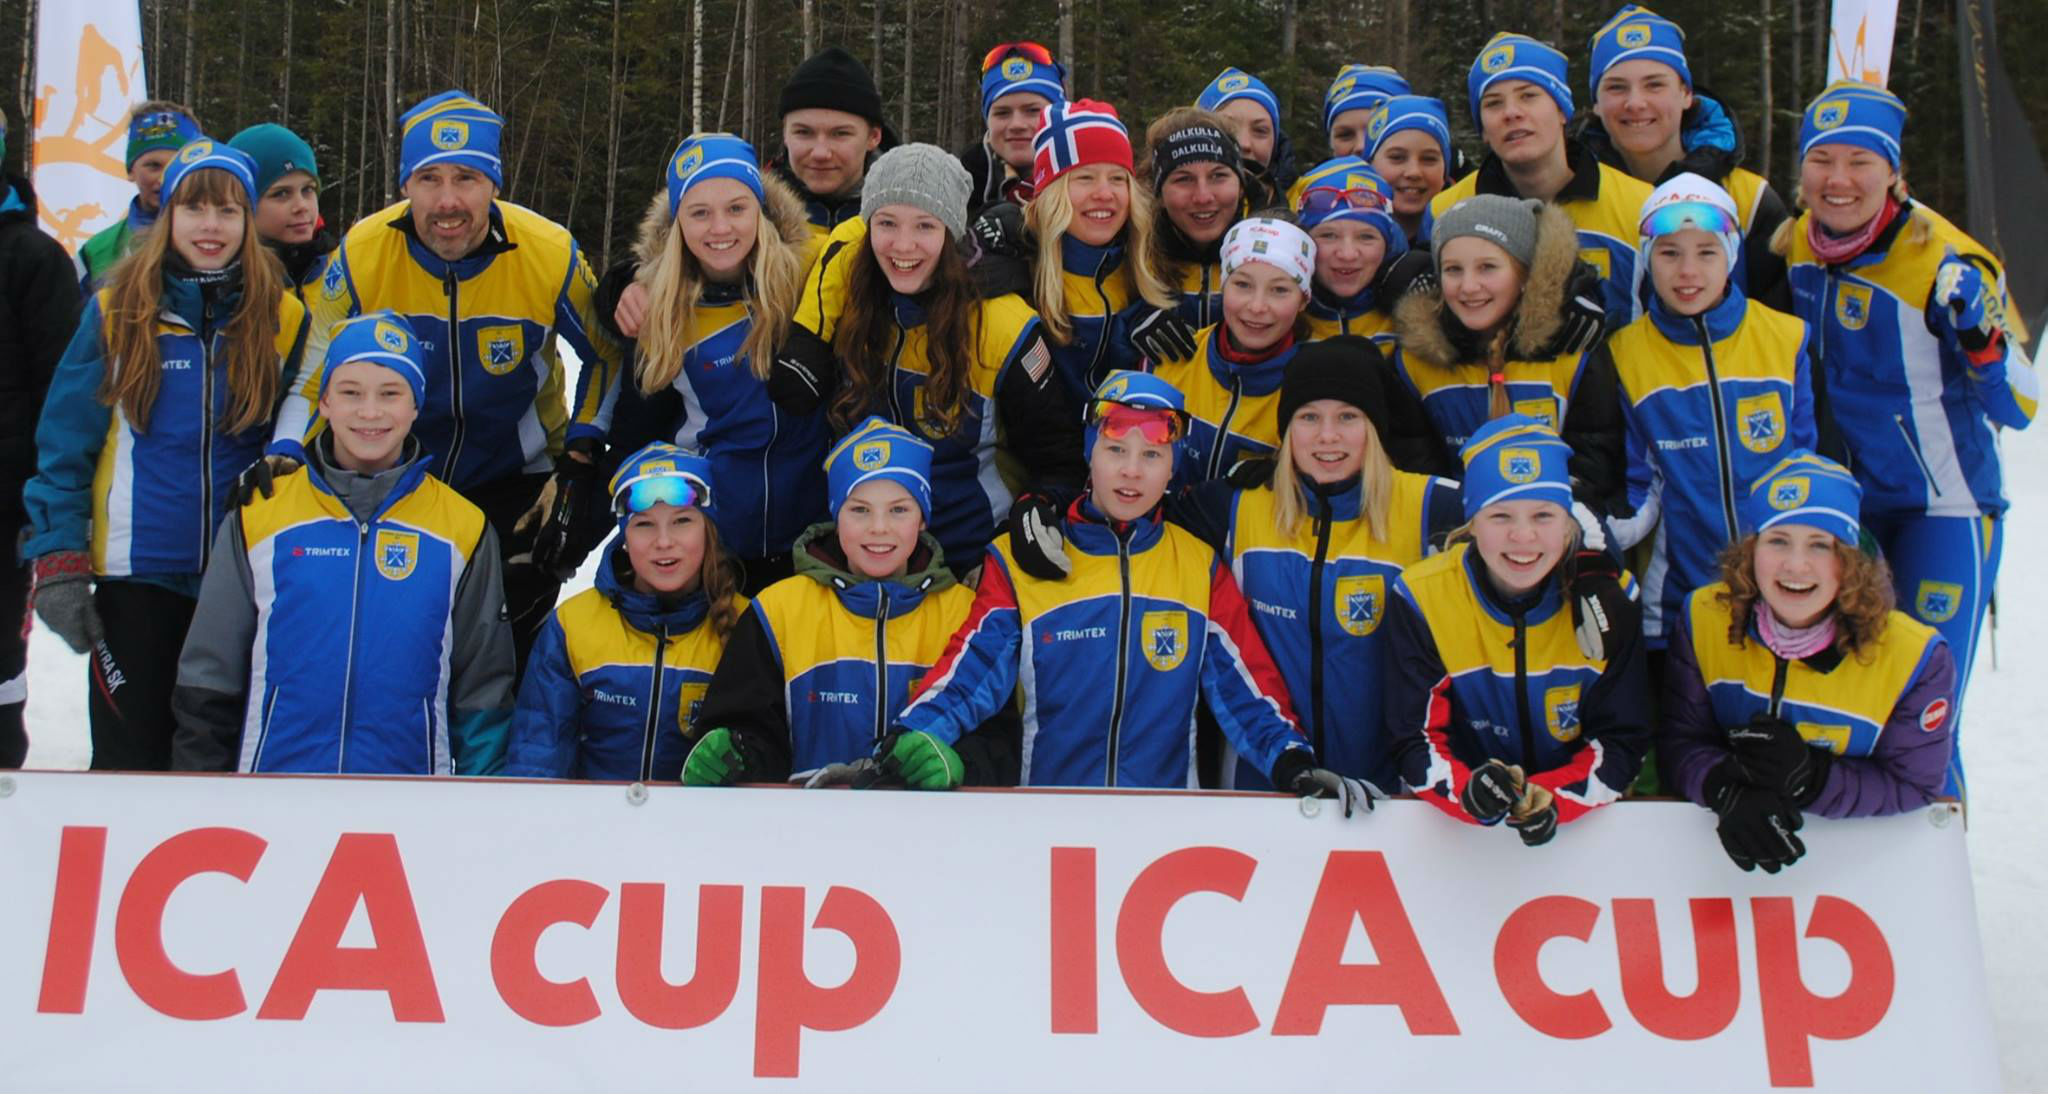 ICA CUP 2015